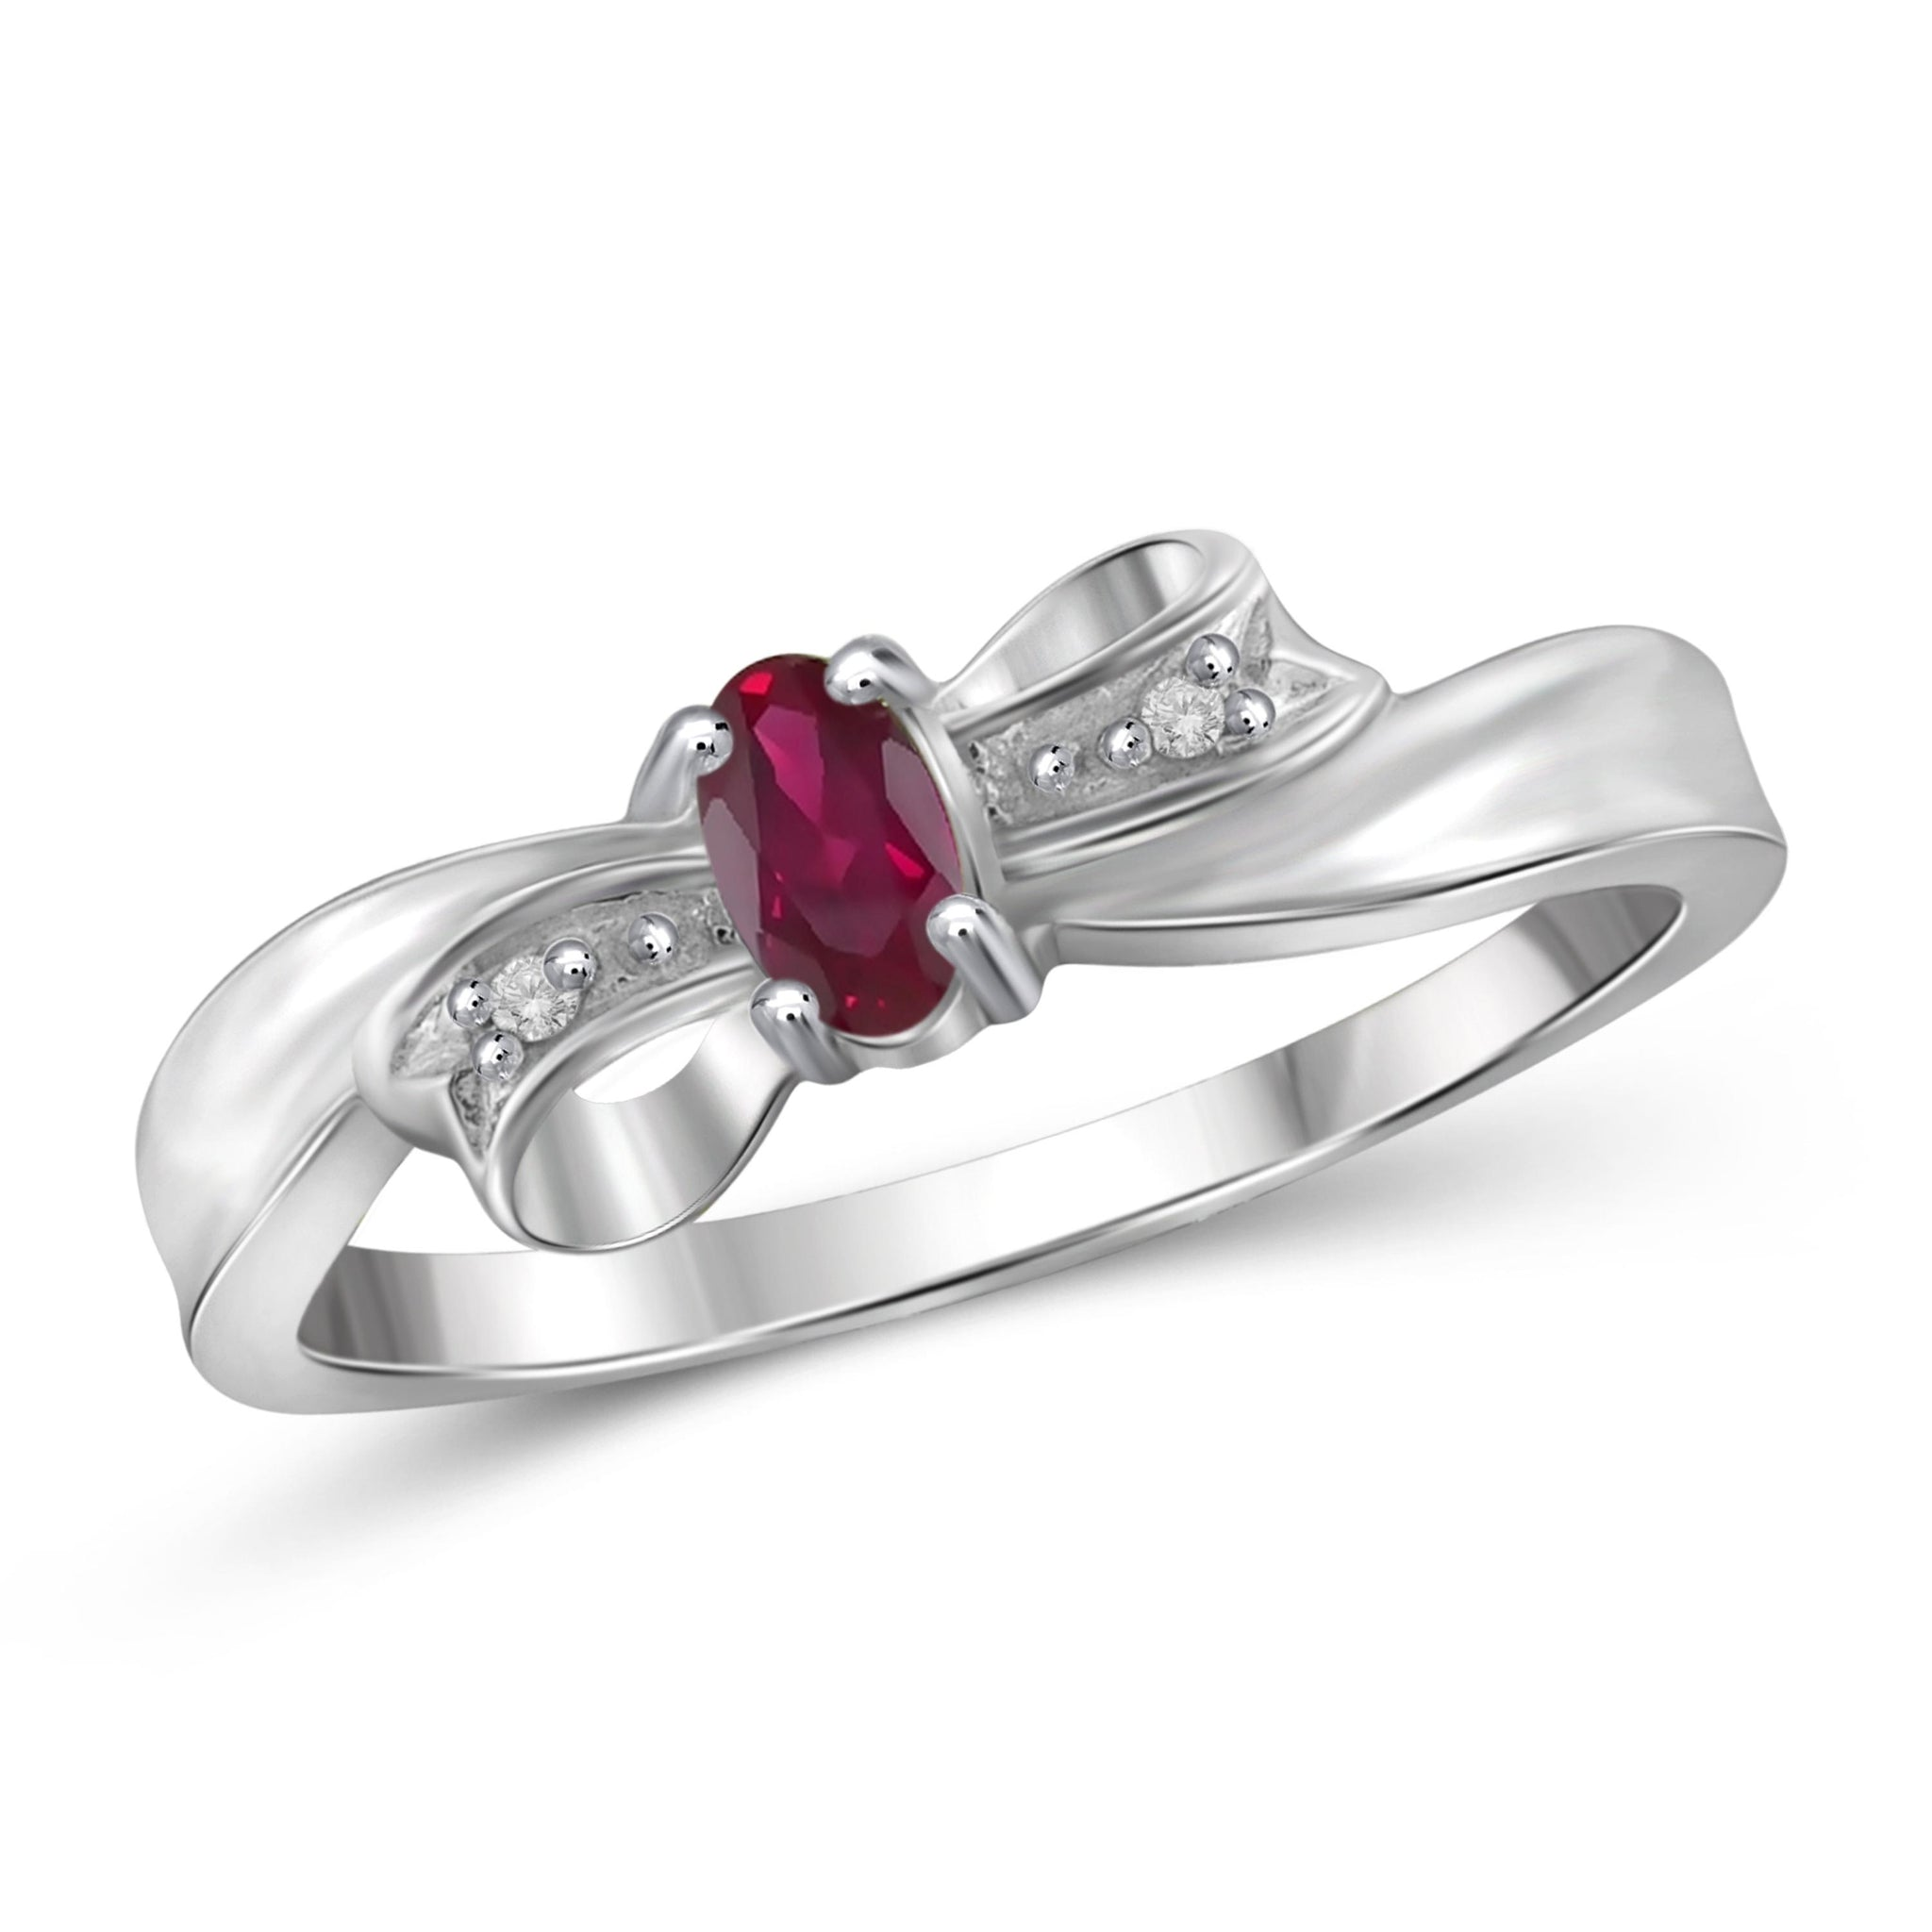 JewelonFire 0.15 Carat T.G.W Ruby and White Diamond Accent Sterling Silver Ring - Assorted Colors